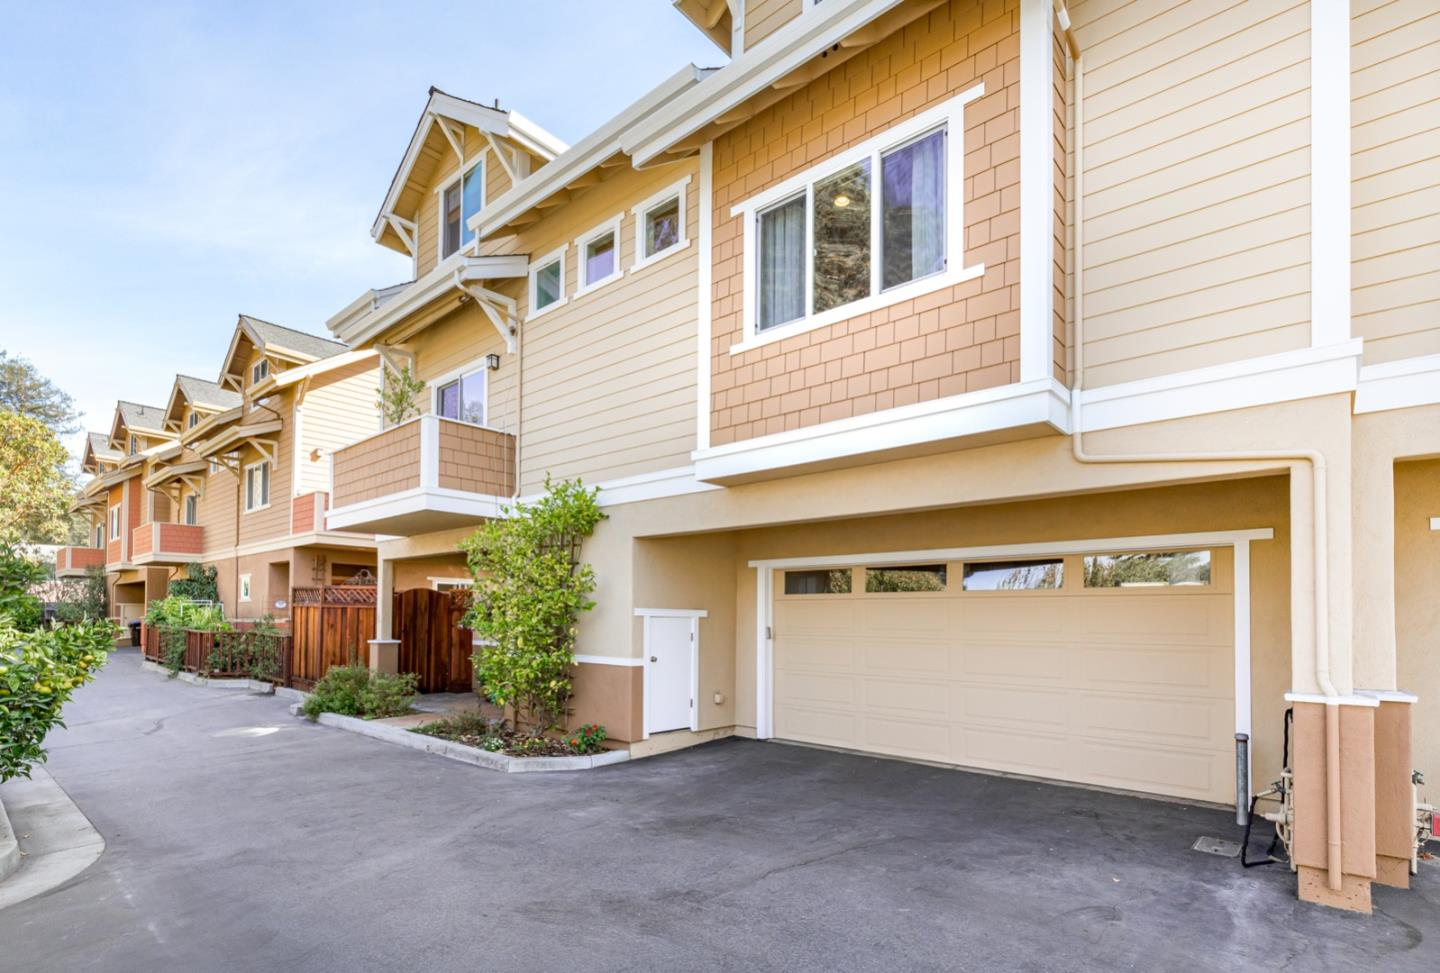 Beautiful, bright craftsman townhome in the heart of Santa Cruz. 3 bedroom, 2.5 bath, over 2000sf with 2-car garage! Built in 2009, finer features include: hand-scraped hardwood floors, custom maple cabinetry, granite counters, stainless appliances, high ceilings, fireplace, and tankless water heater. Master bedroom suite has a walk-in closet custom designed by California closets, and the bathroom is lovely with double sinks, separate shower and soaking tub. The other 2 bedrooms are large with ample closets! The inside laundry room and 1/2 bath have custom built-in cabinetry.  A commuter's dream-jump on Hwy 17 @ Ocean and you're in Los Gatos in 30 minutes. With a park & dog park across the street, DeLaveaga, beaches, shopping/restaurants within minutes.  You don't want to miss this home!